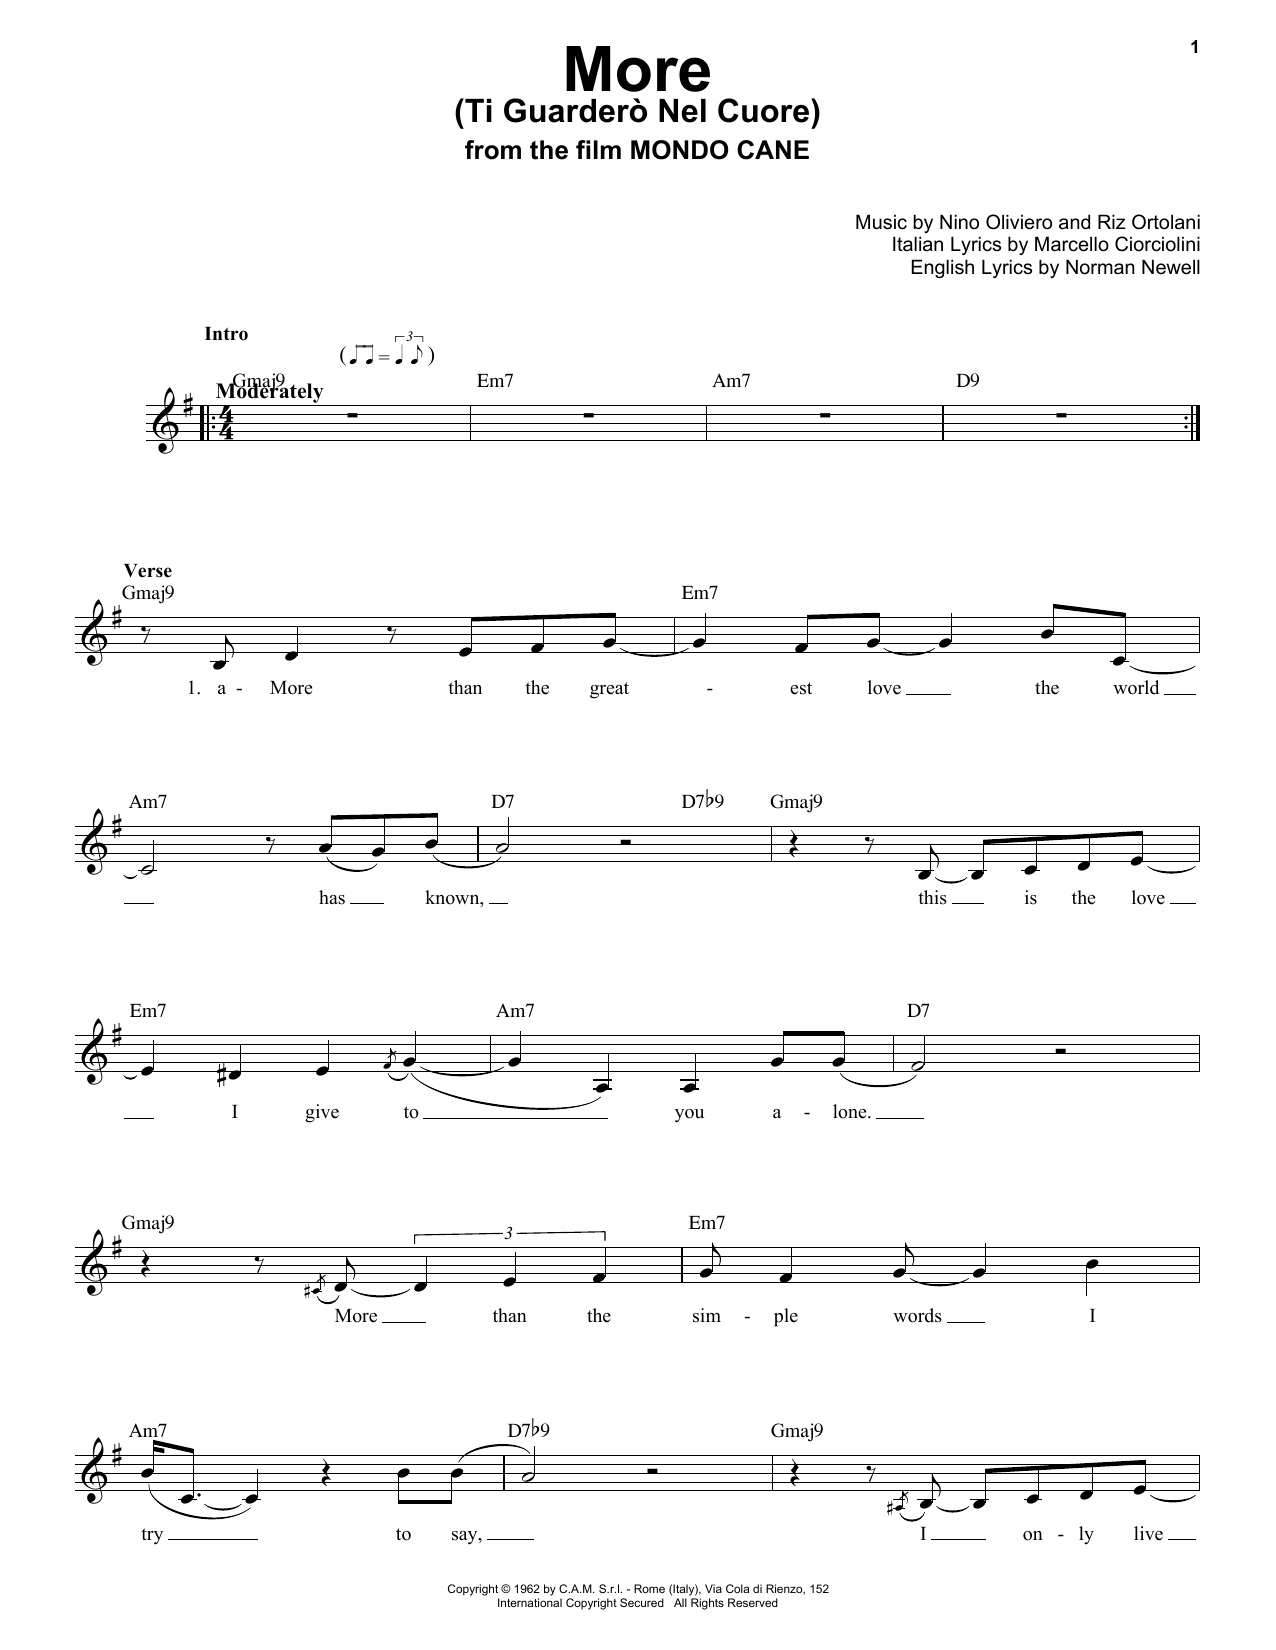 More (Ti Guarderò Nel Cuore) Sheet Music